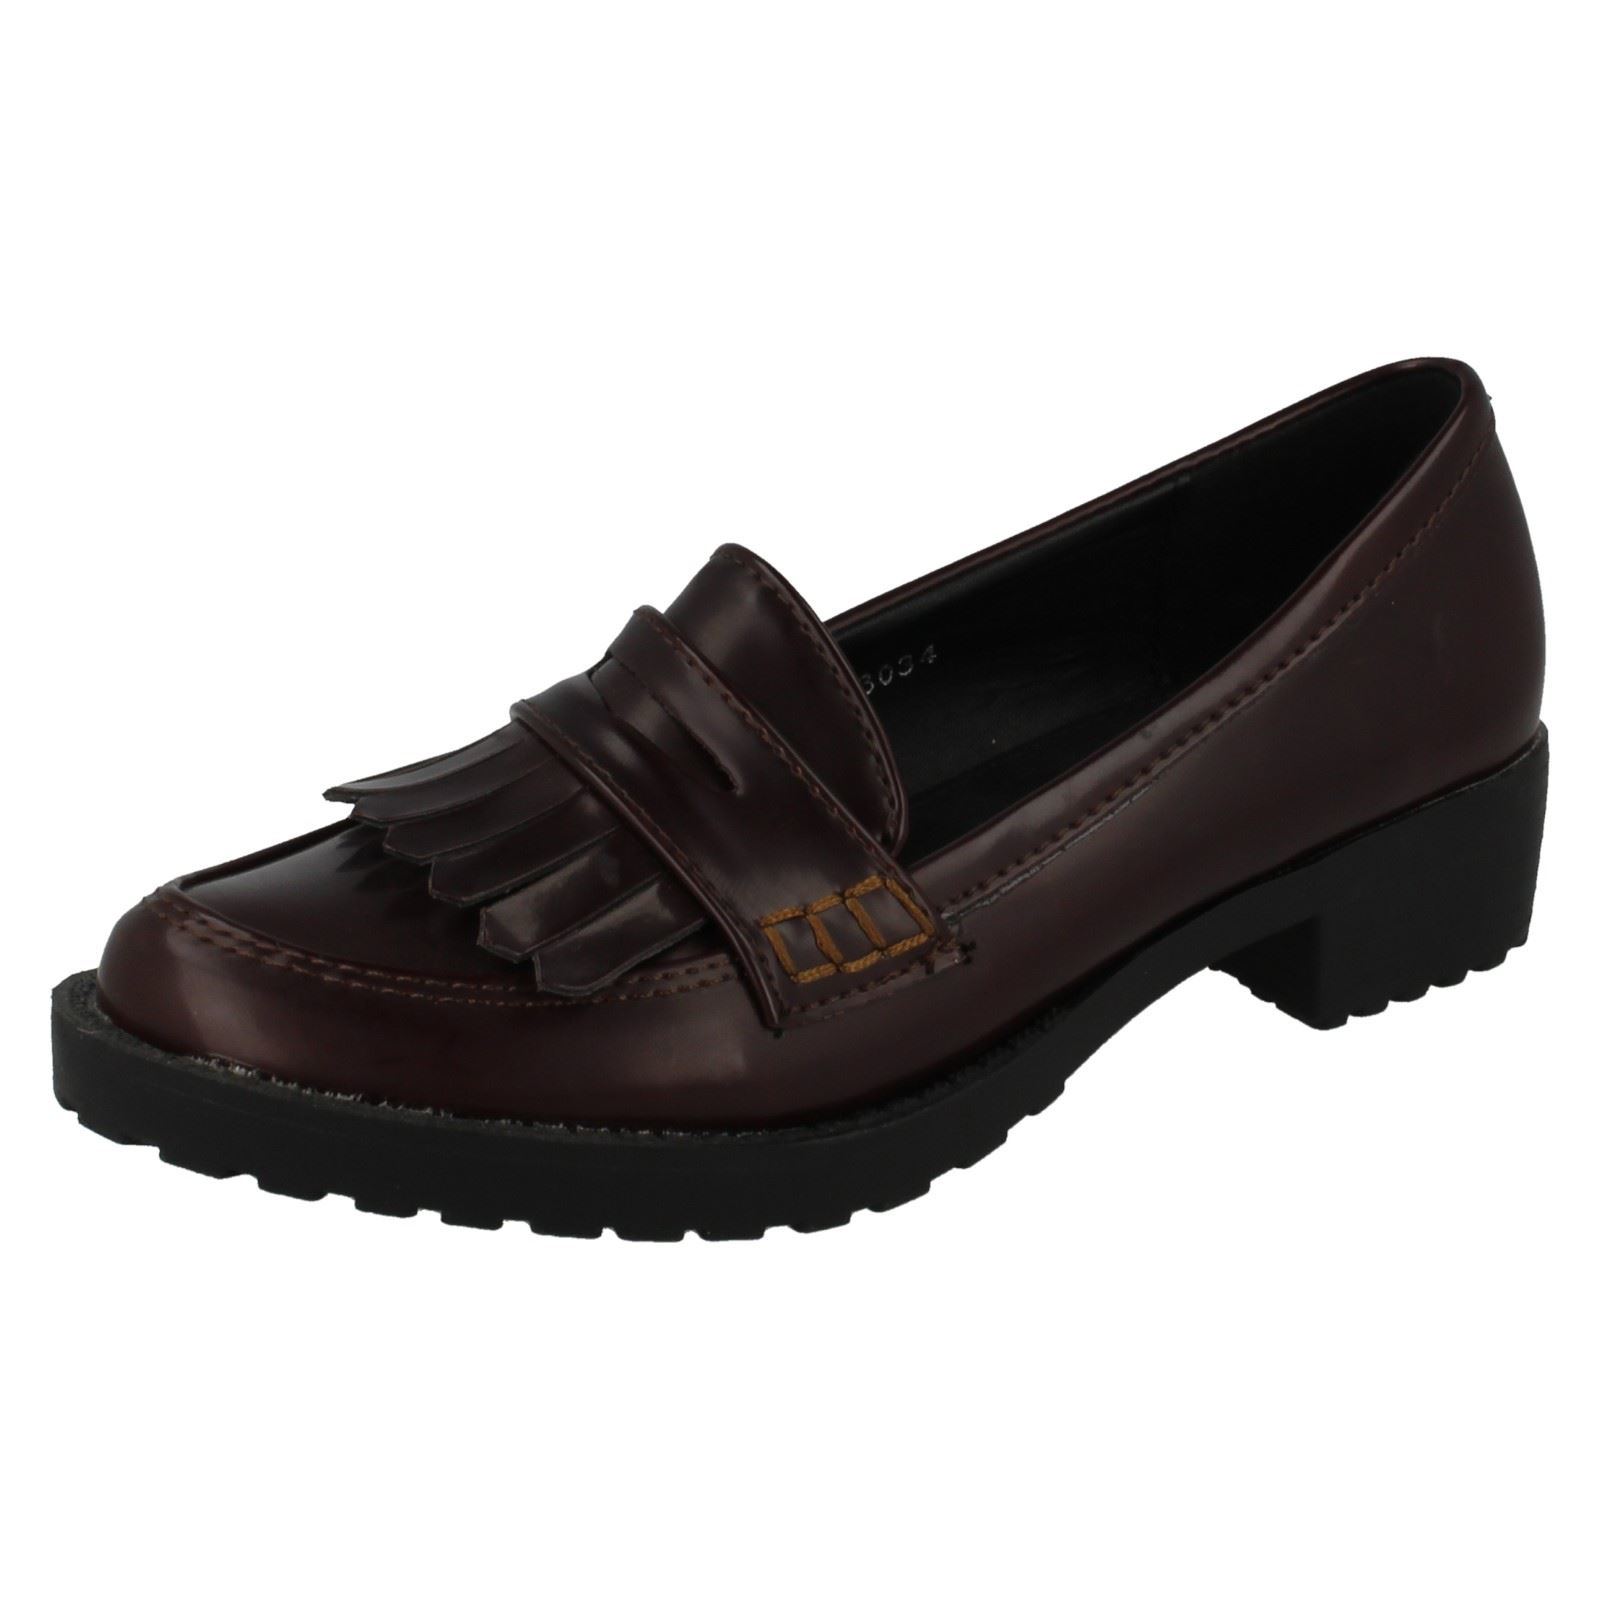 Girls Spot On Formal Loafer Flat - H3034